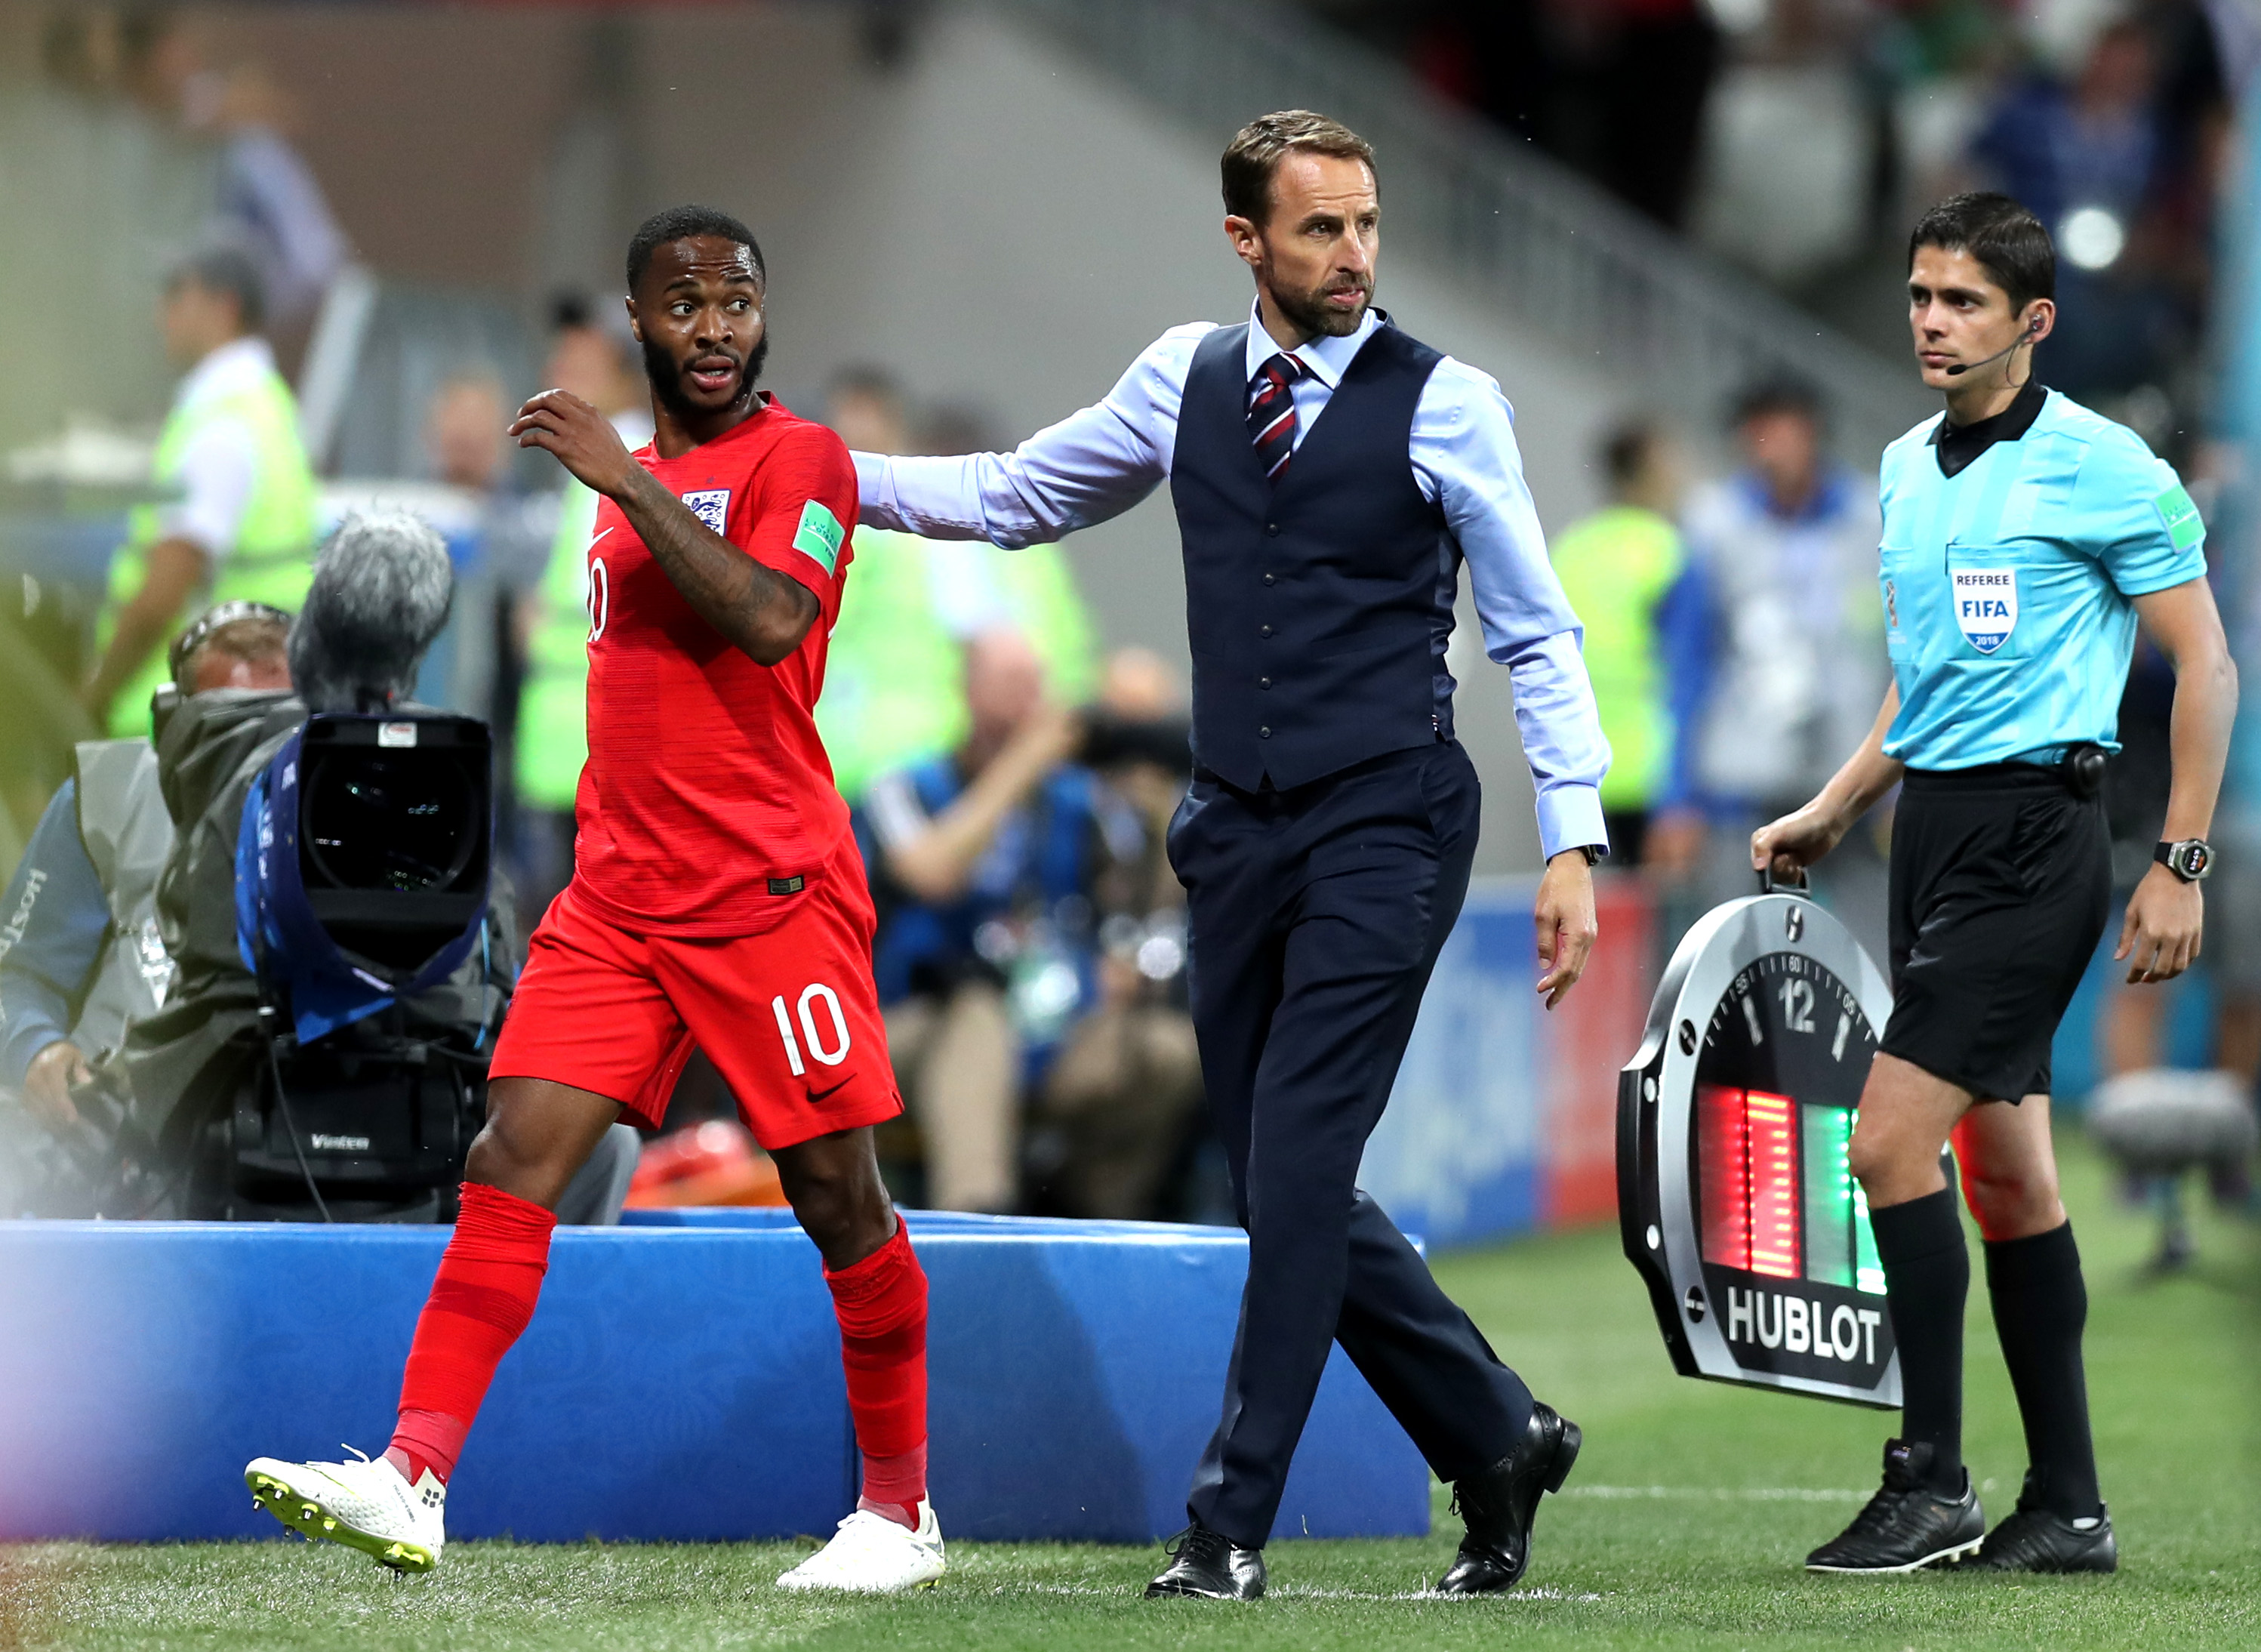 Gareth Southgate becomes first major injury casualty of England's World Cup campaign